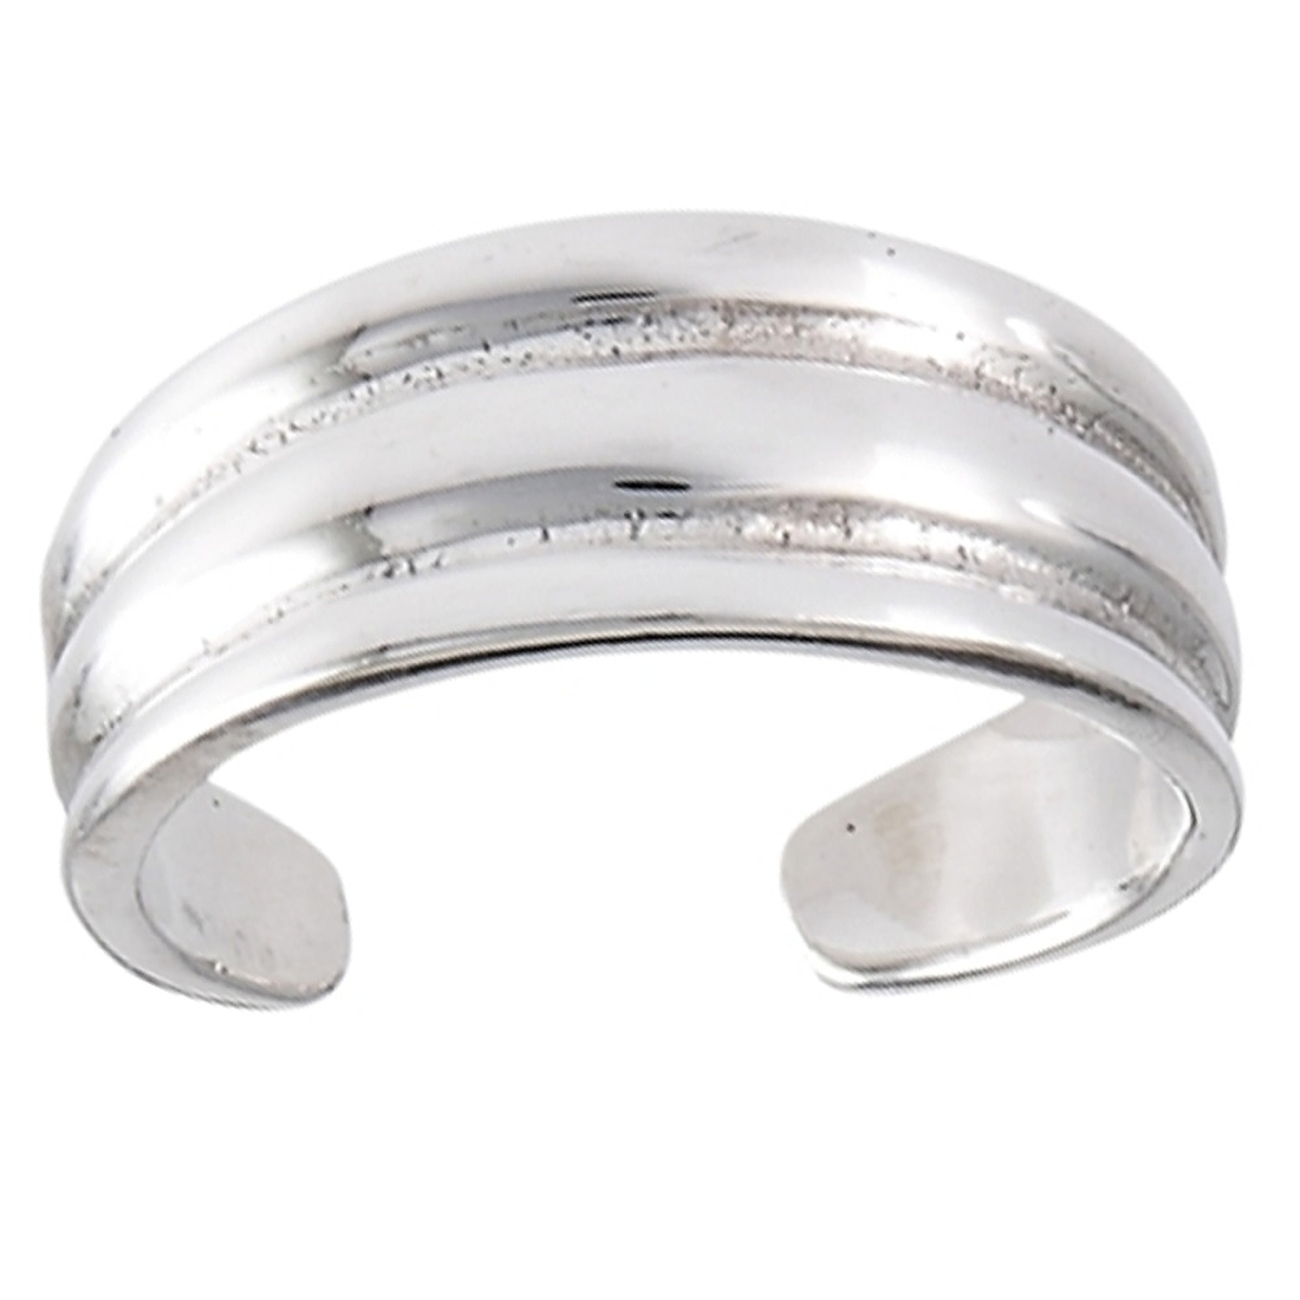 Wide Band Three Ridge Plain Adjustable Toe Ring